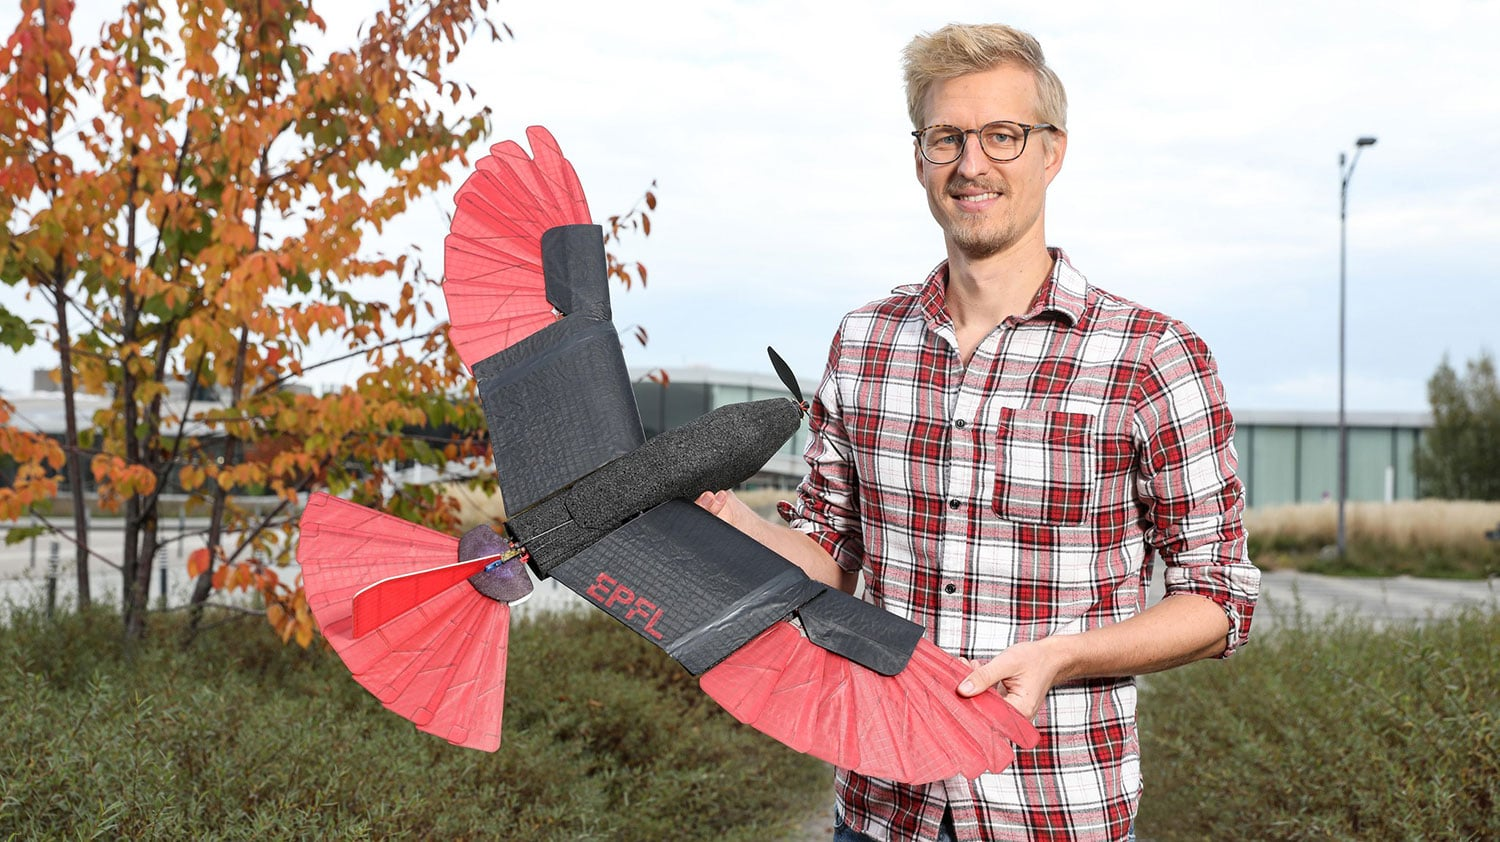 Engineers develop a raptor-inspired drone that can fly for a long time